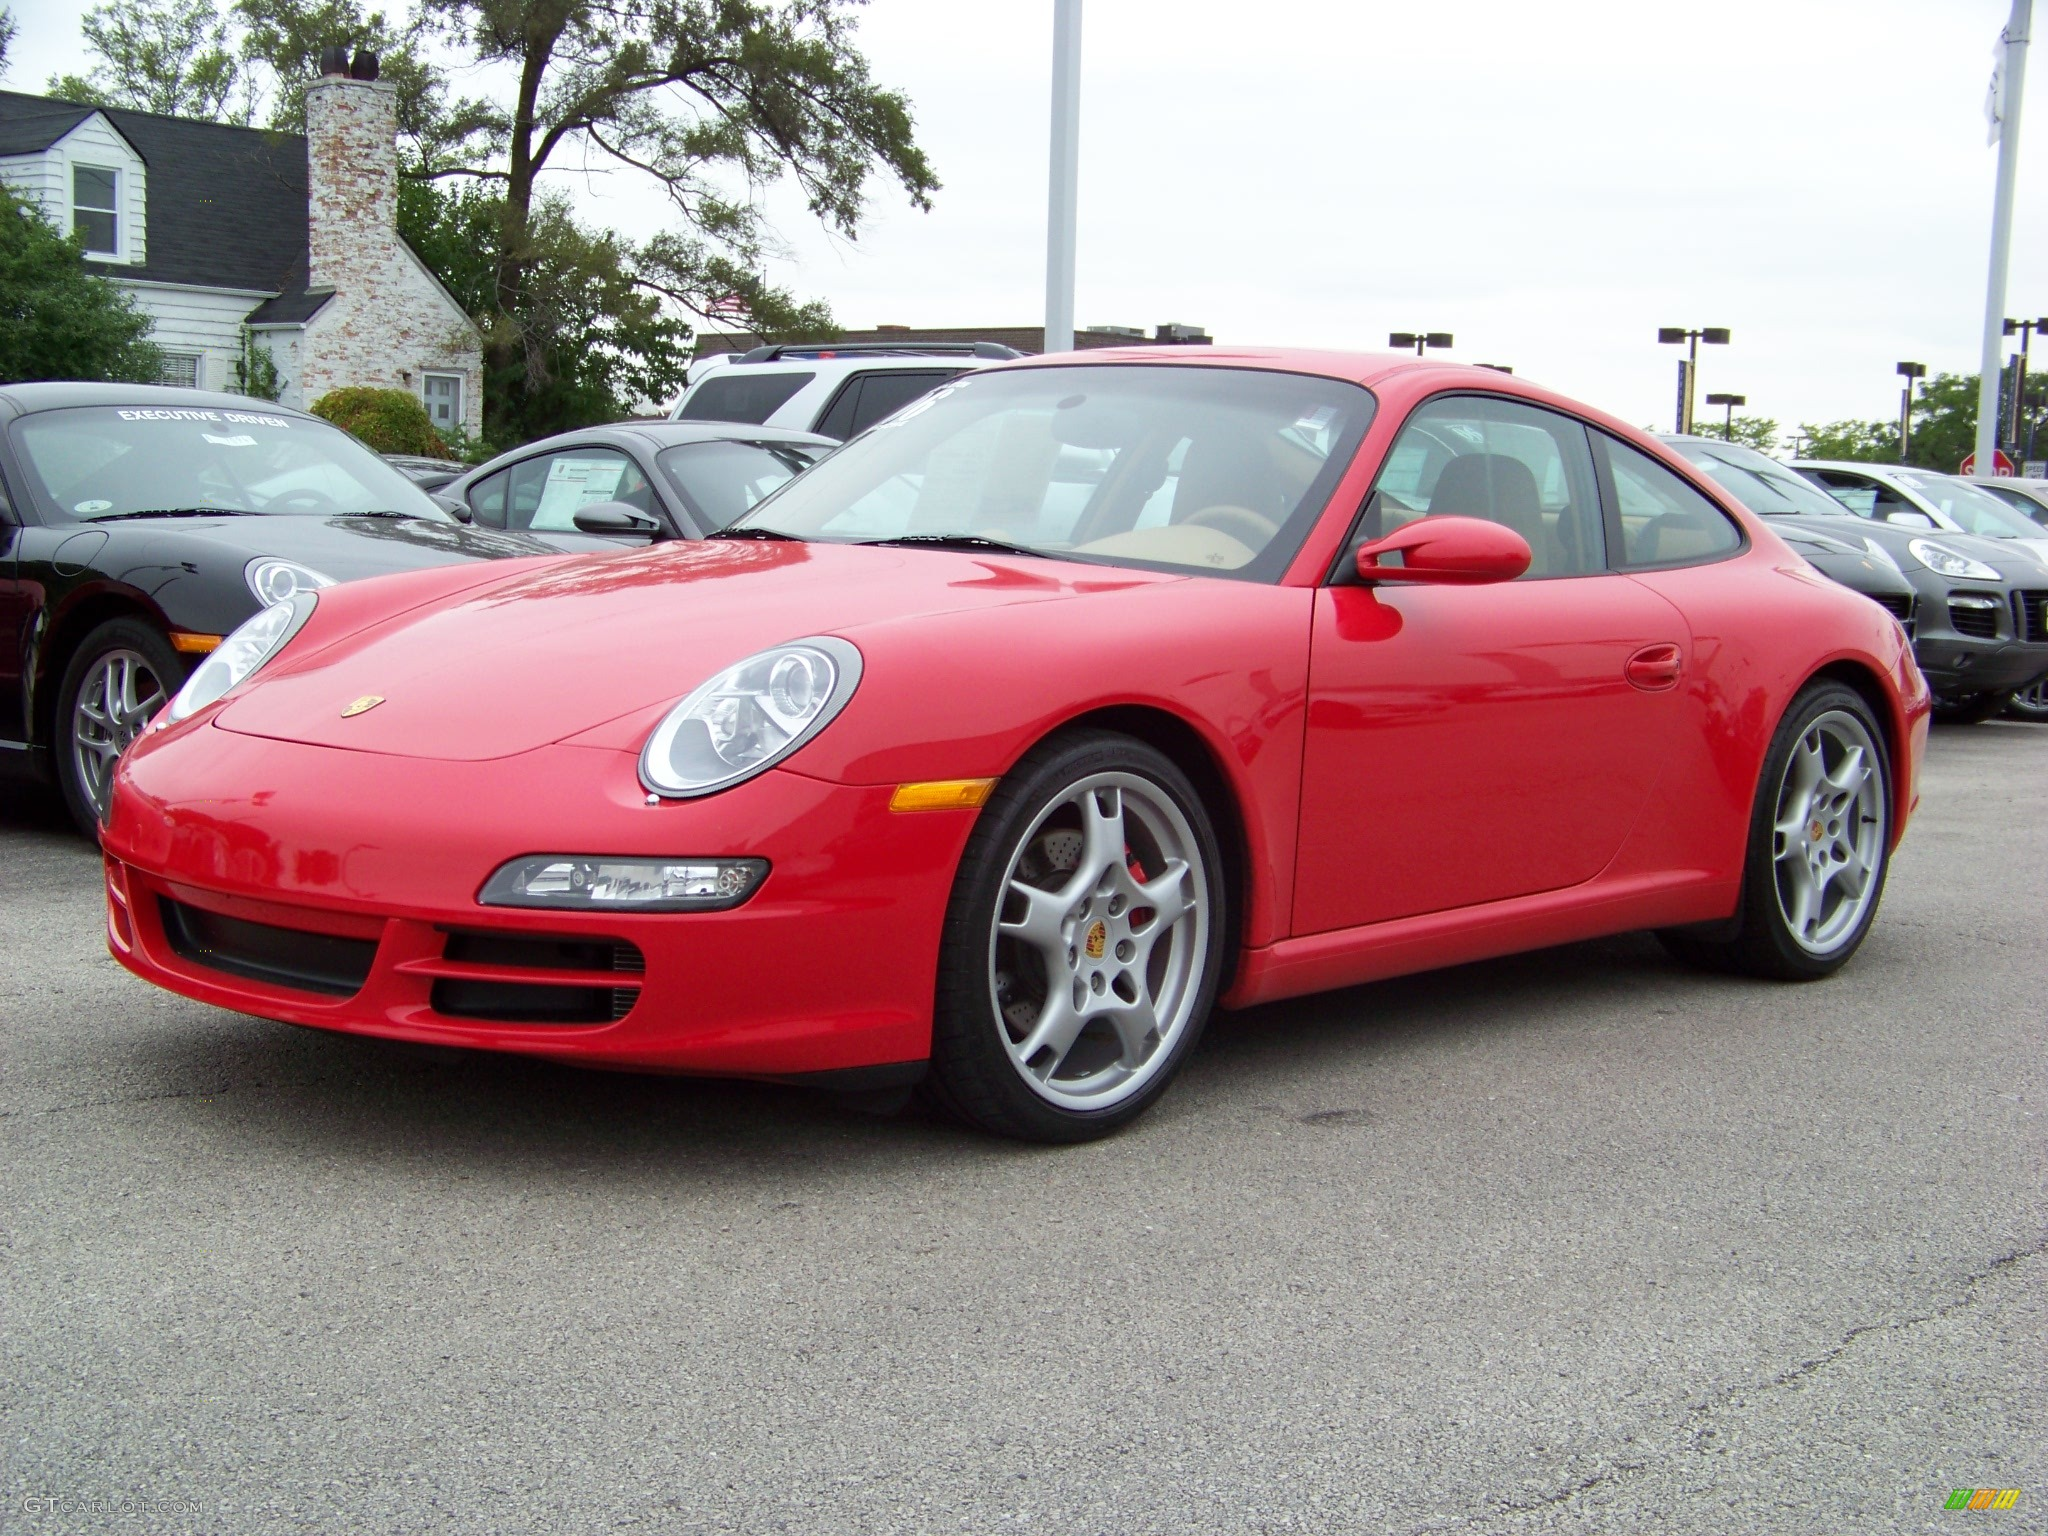 2006 guards red porsche 911 carrera s coupe 242047. Black Bedroom Furniture Sets. Home Design Ideas